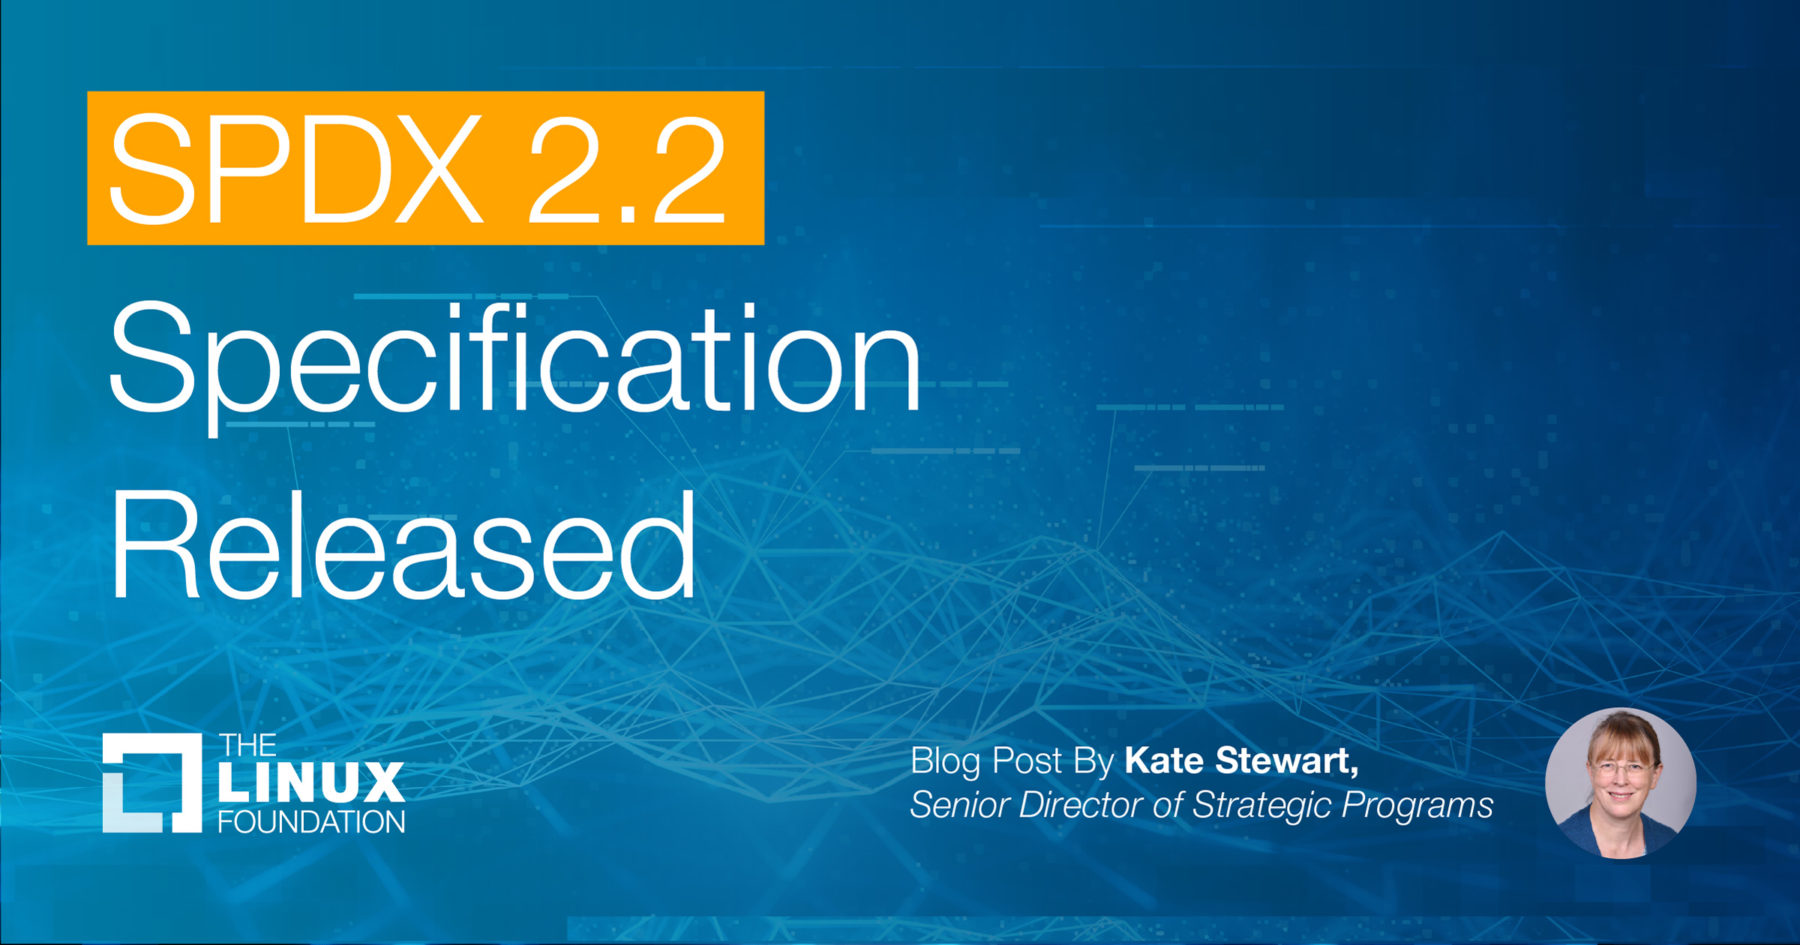 SPDX 2.2 Specification Released